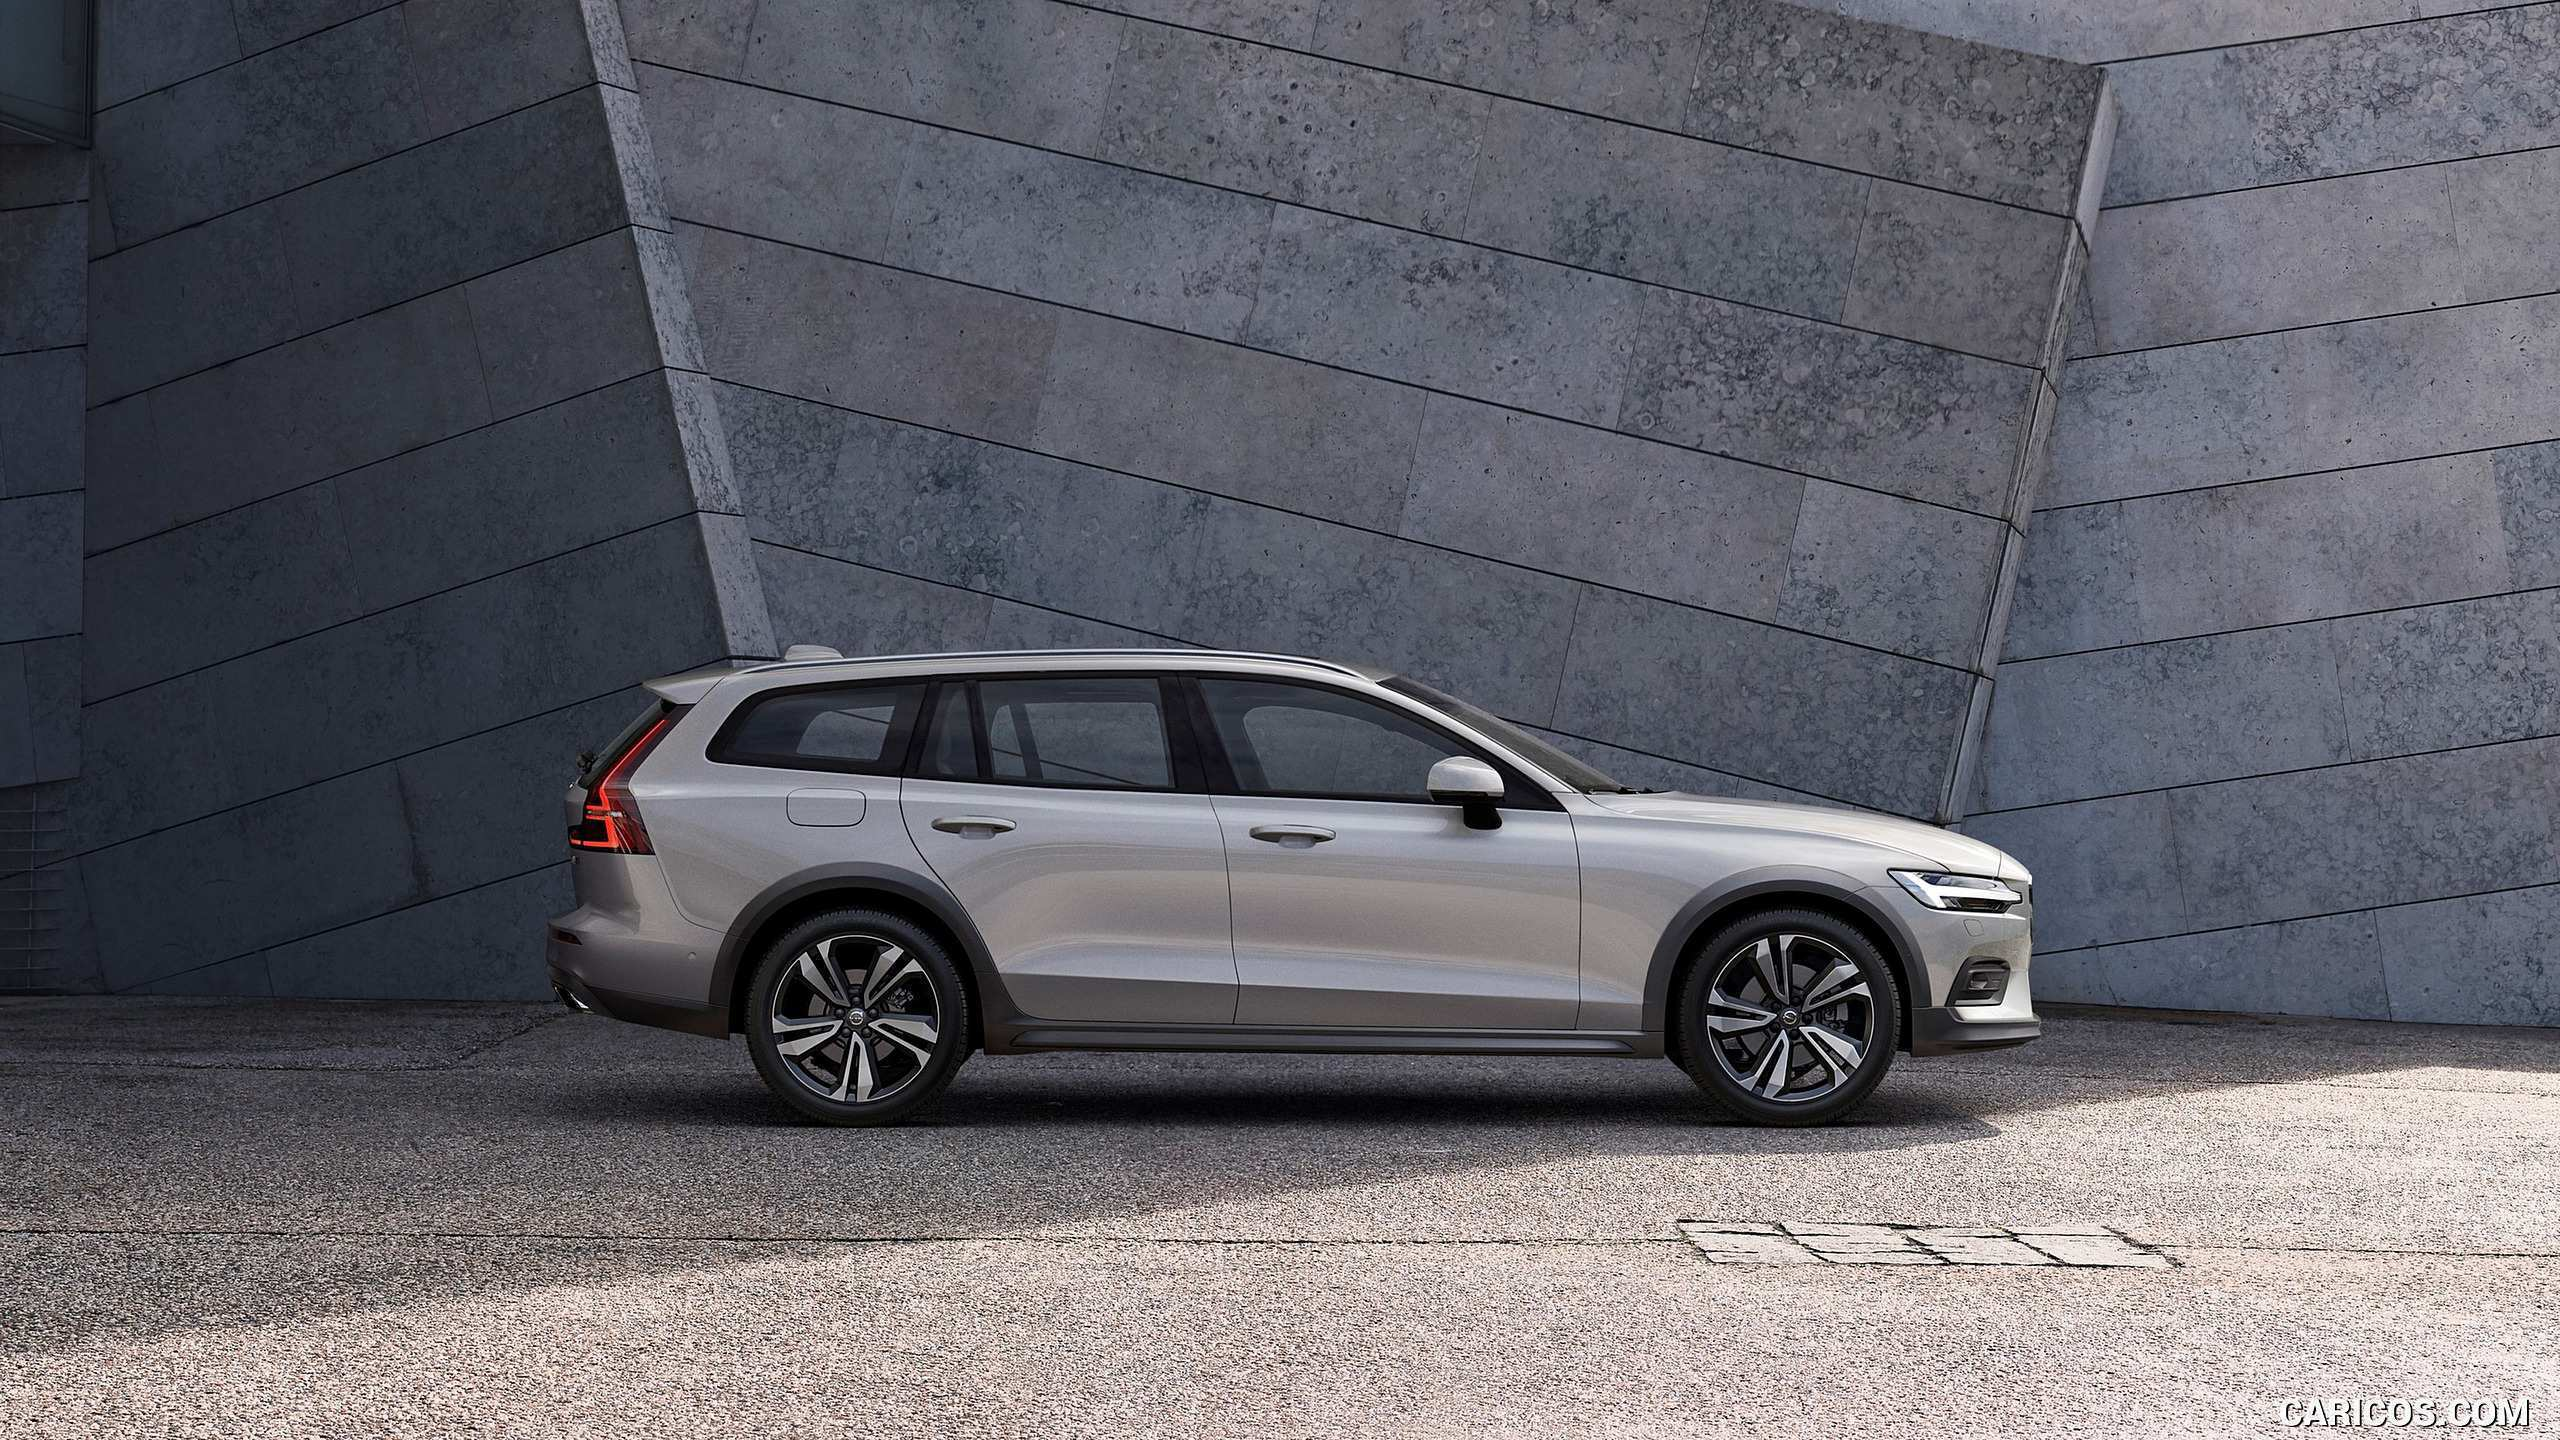 11 All New 2019 Volvo V60 Cross Country Research New with 2019 Volvo V60 Cross Country